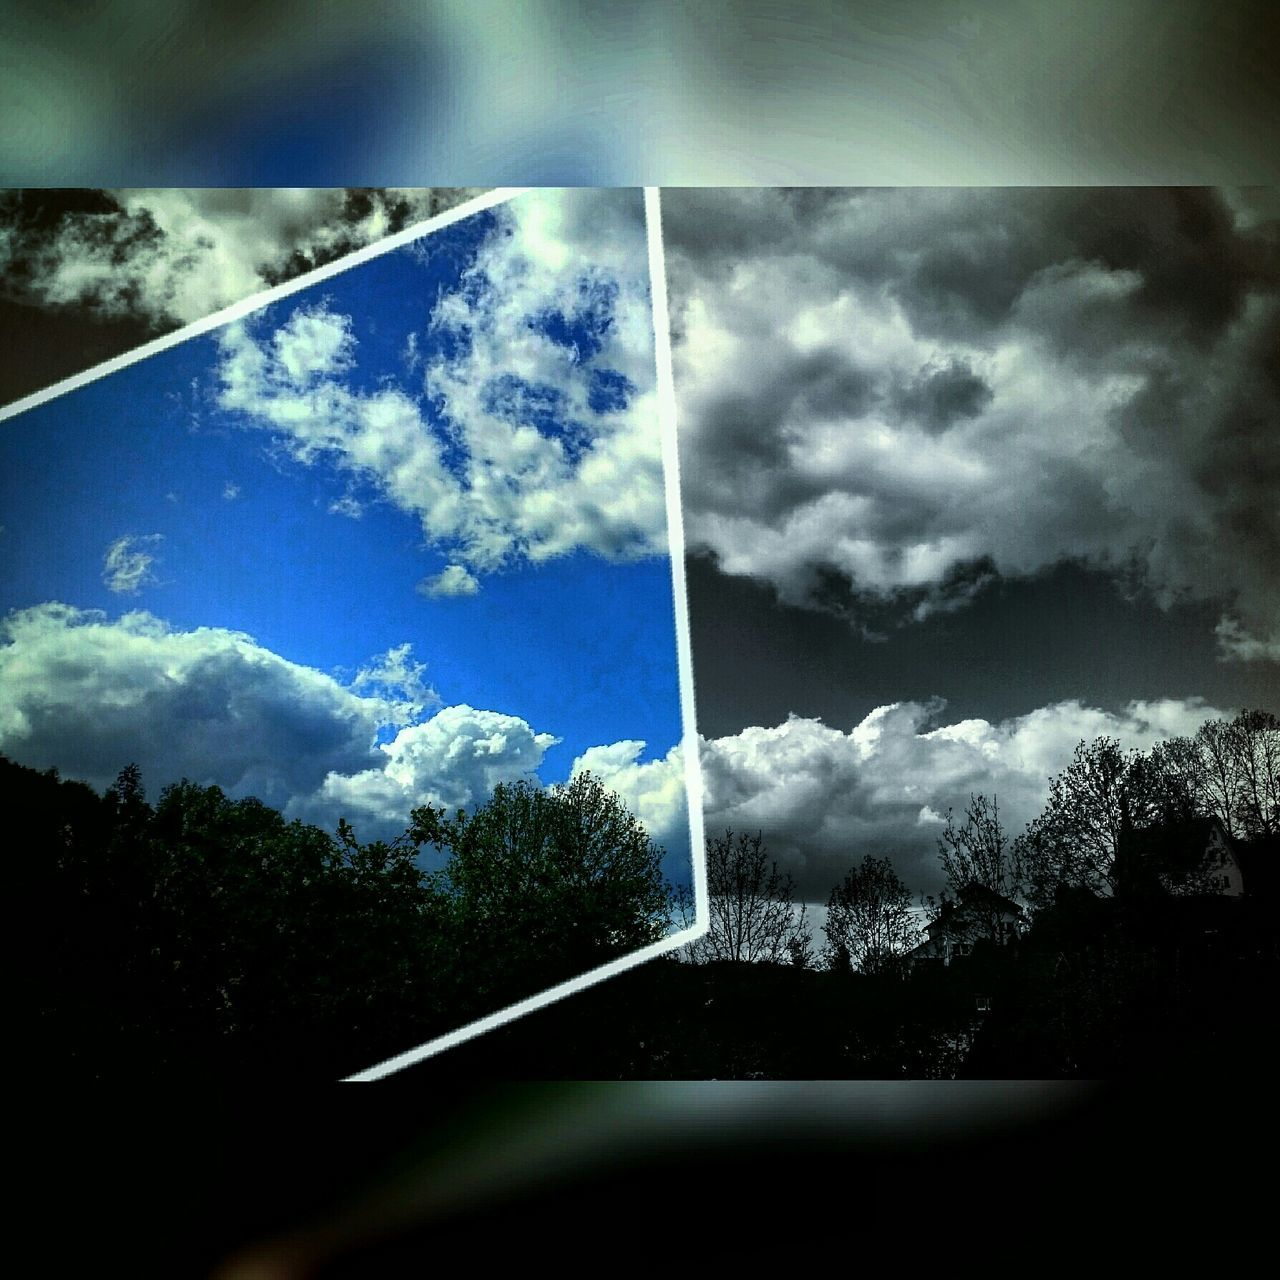 cloud - sky, sky, car, no people, day, nature, outdoors, beauty in nature, tree, close-up